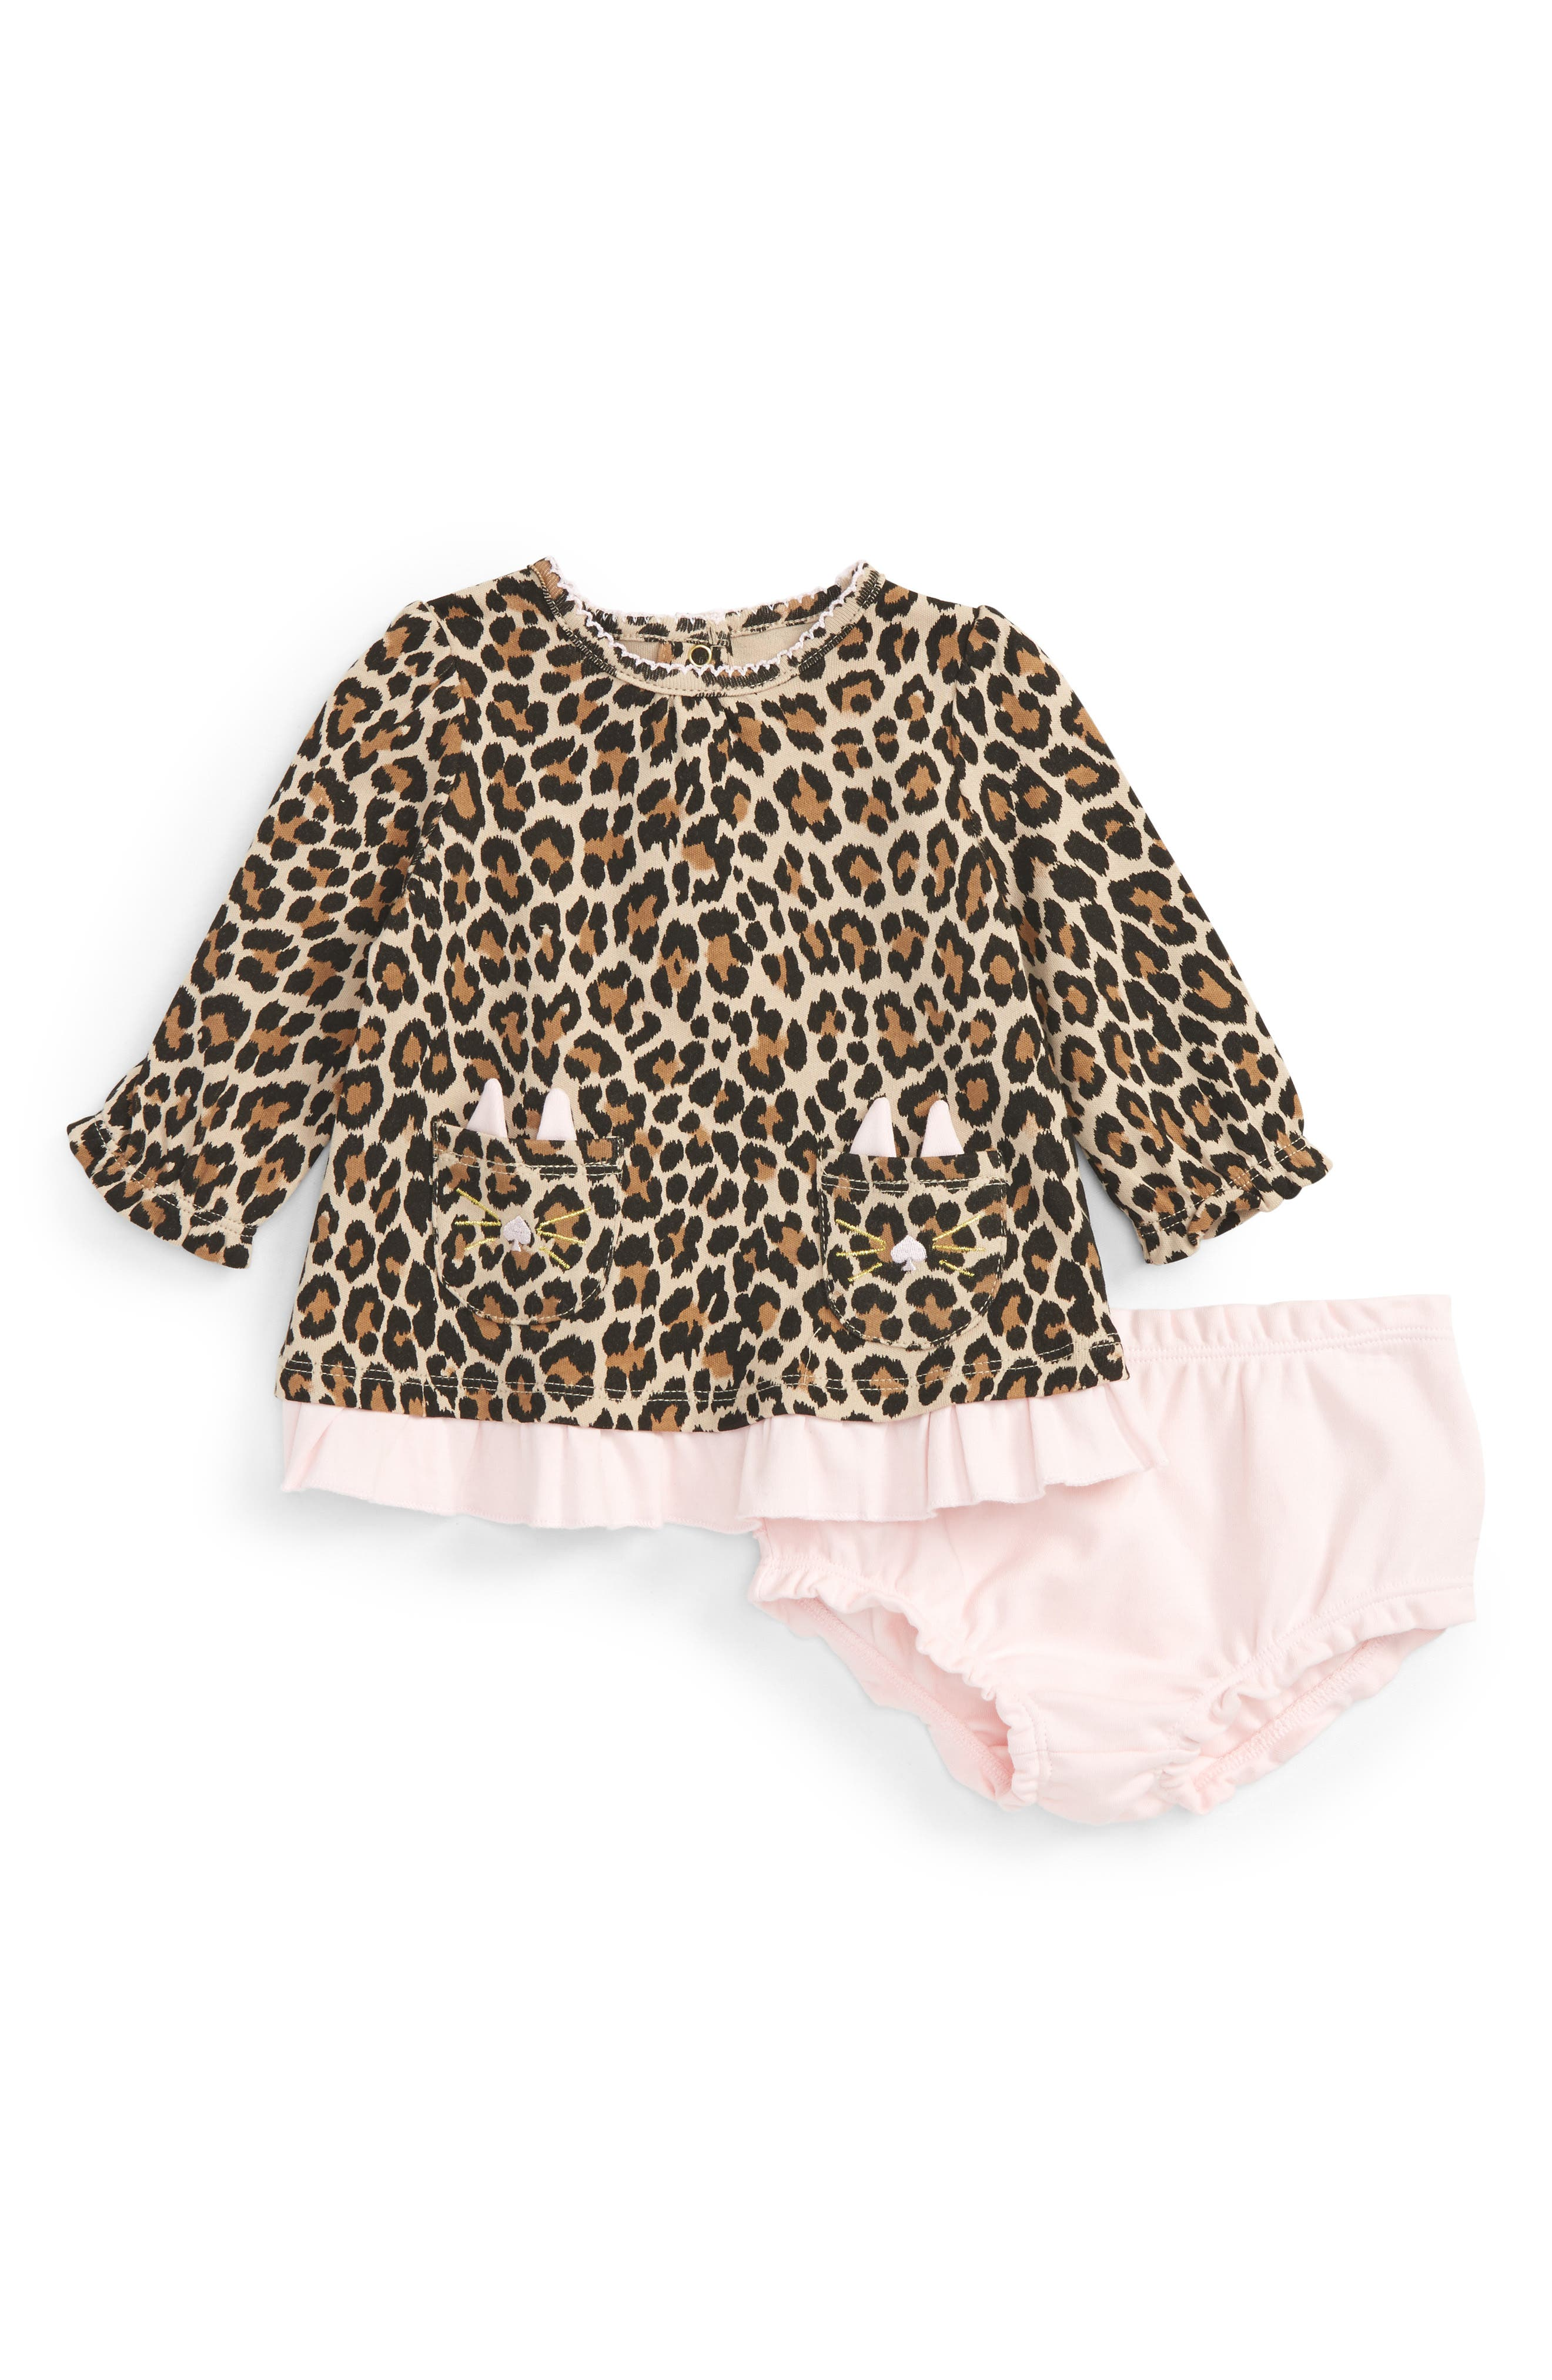 kate spade new york leopard print dress (Baby Girls)